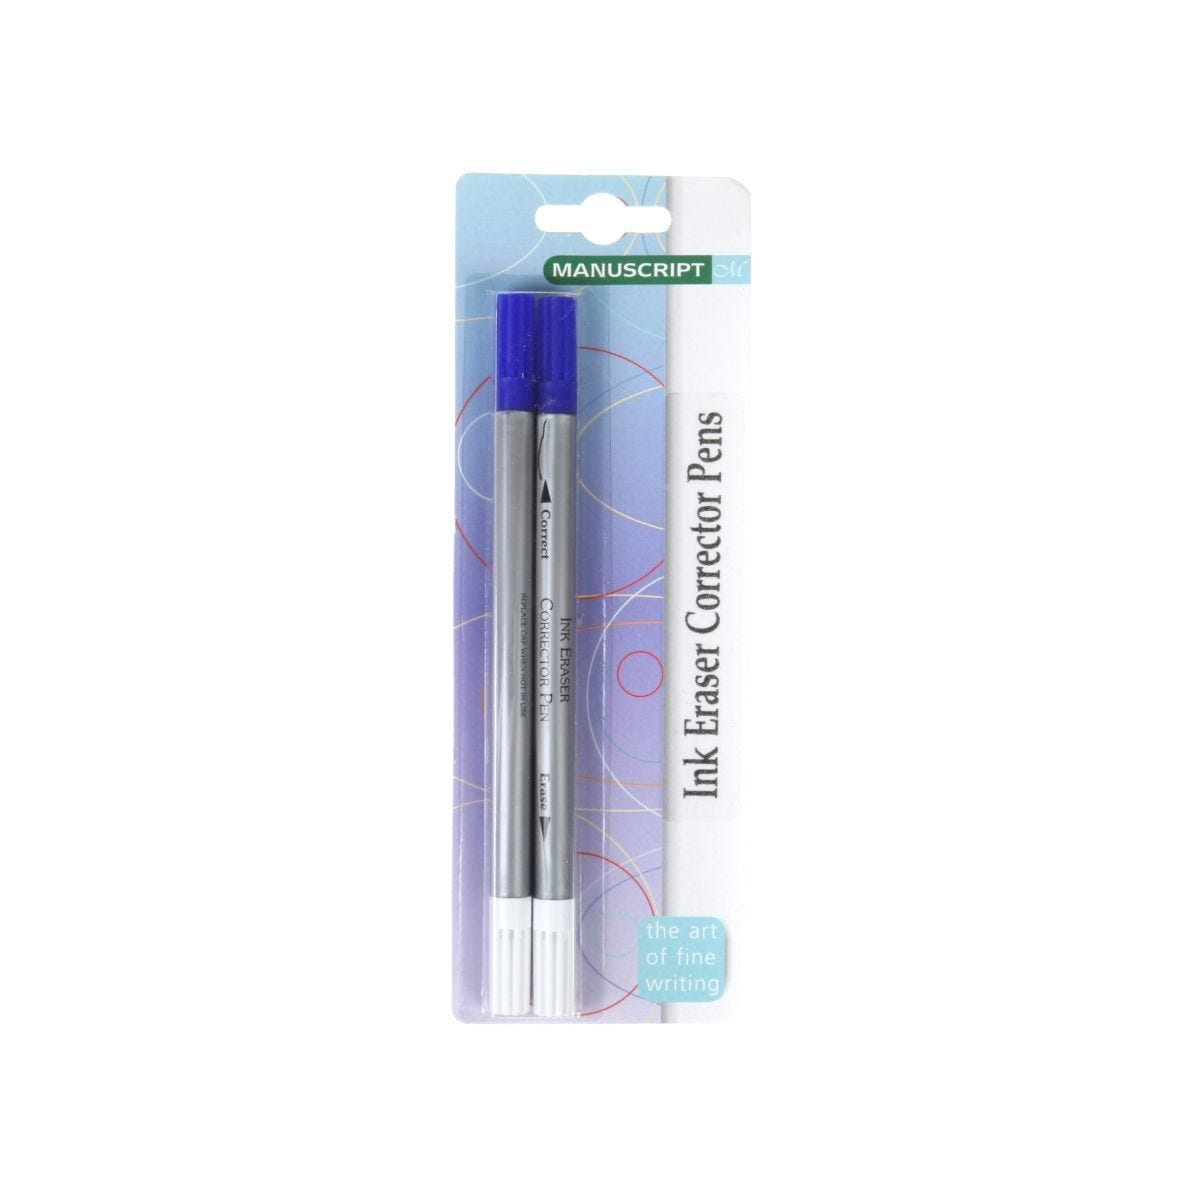 Manuscript Eraser Ink Pack of 2